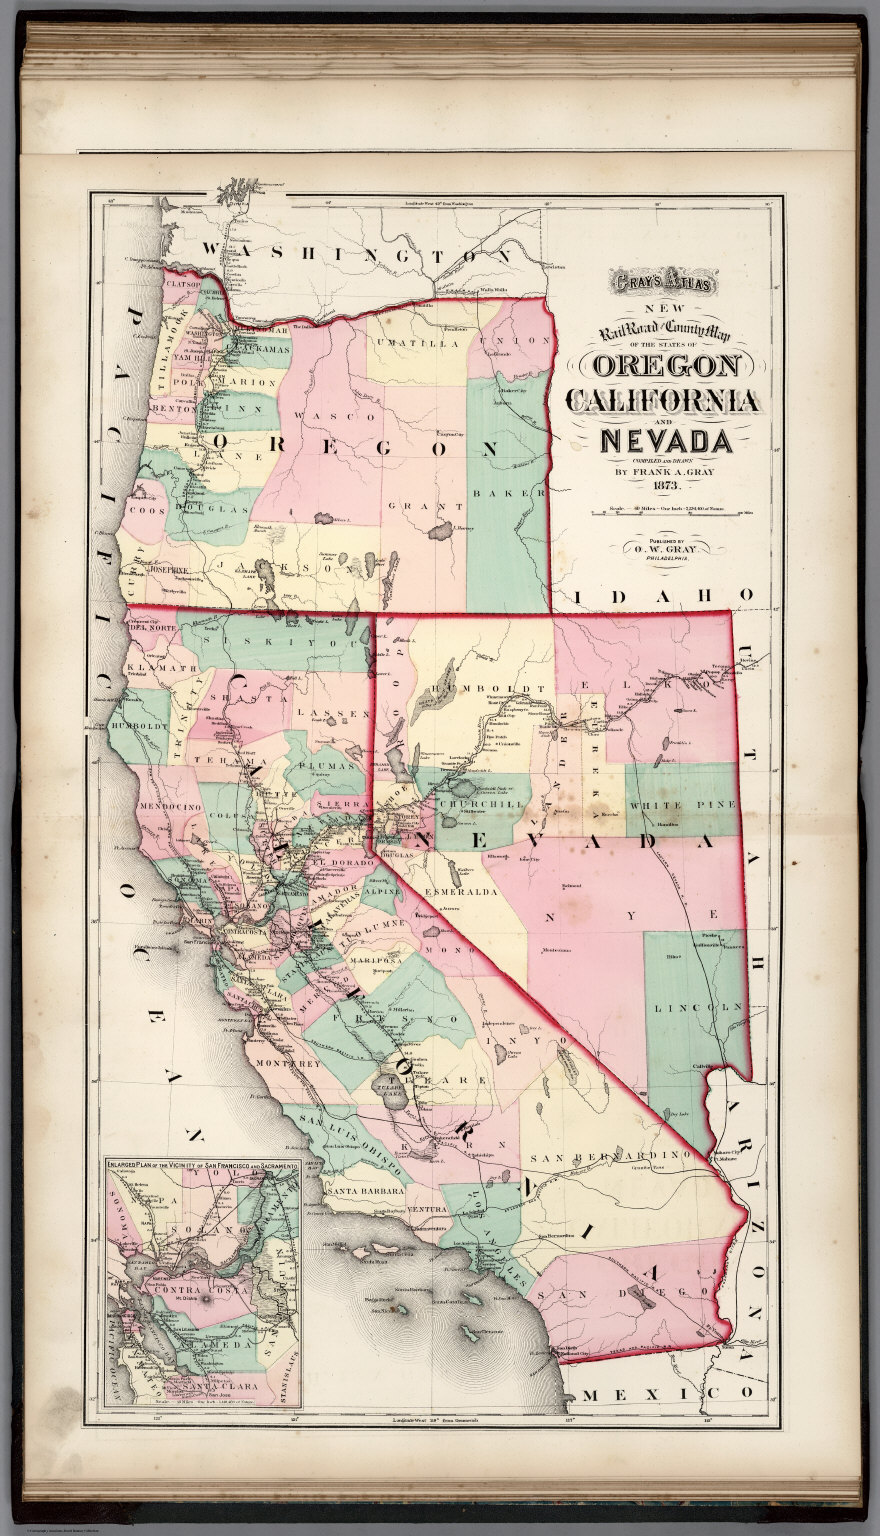 Map Of California To Oregon.Railroad And County Map Of Oregon California And Nevada David